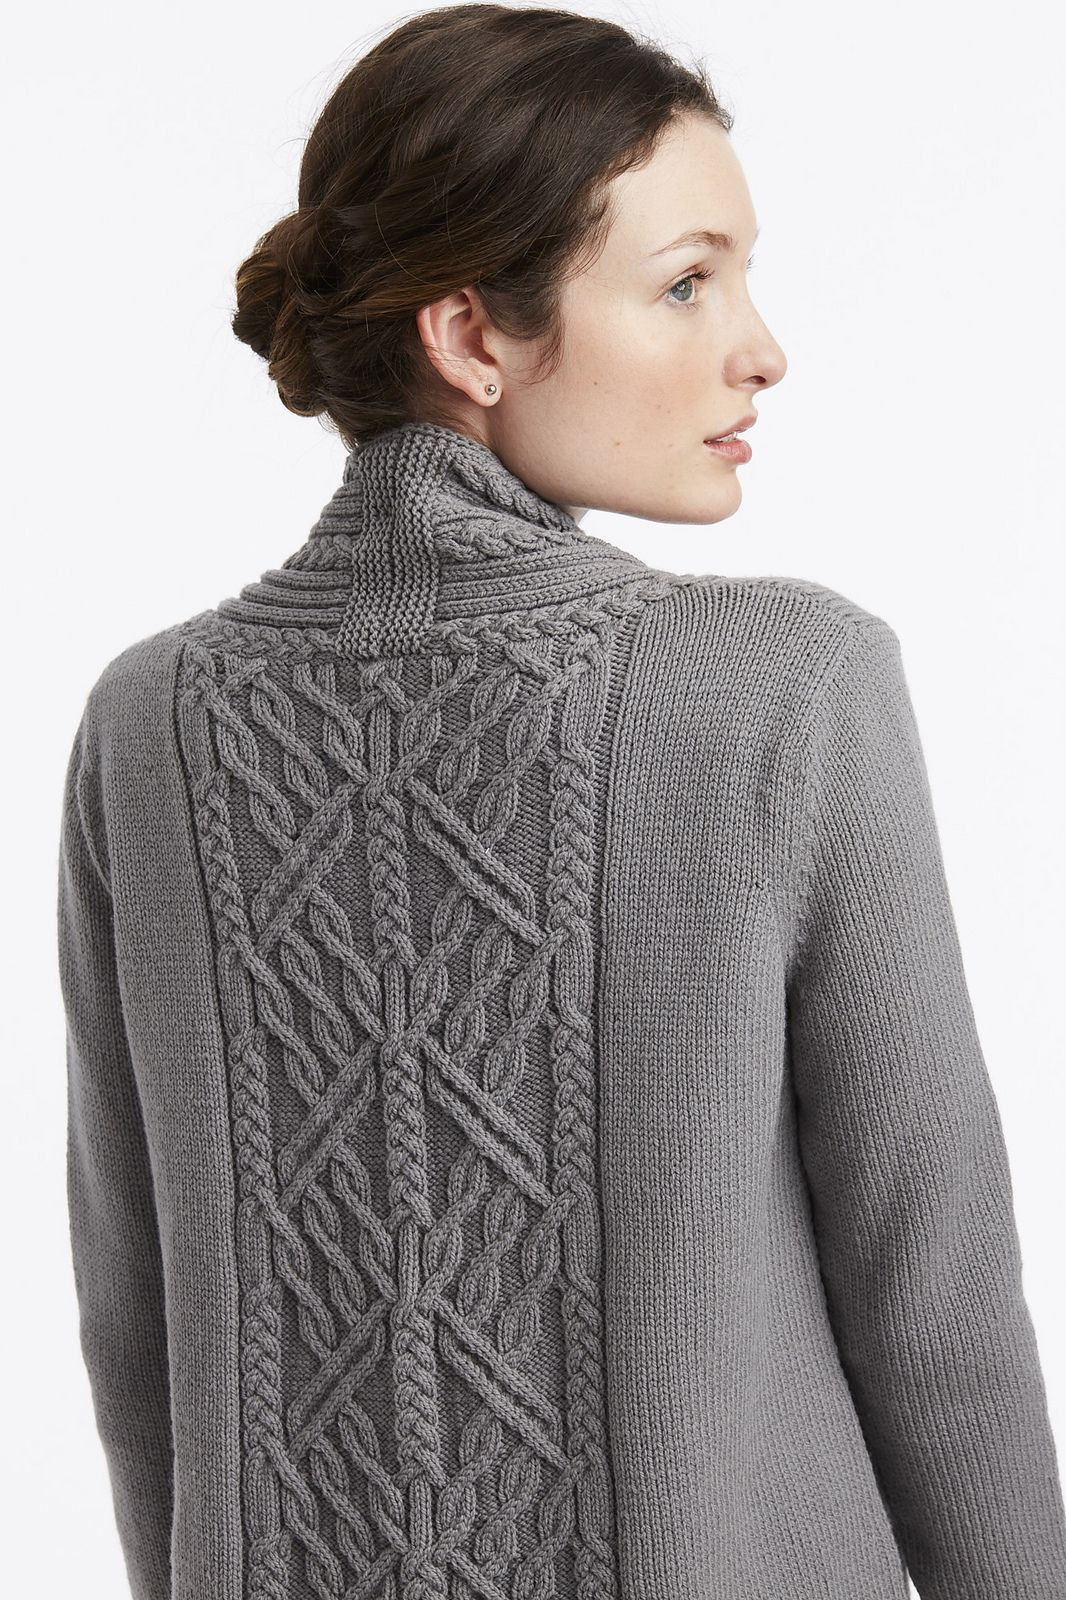 2a6481465 14 Arbor Cardigan pattern by Norah Gaughan